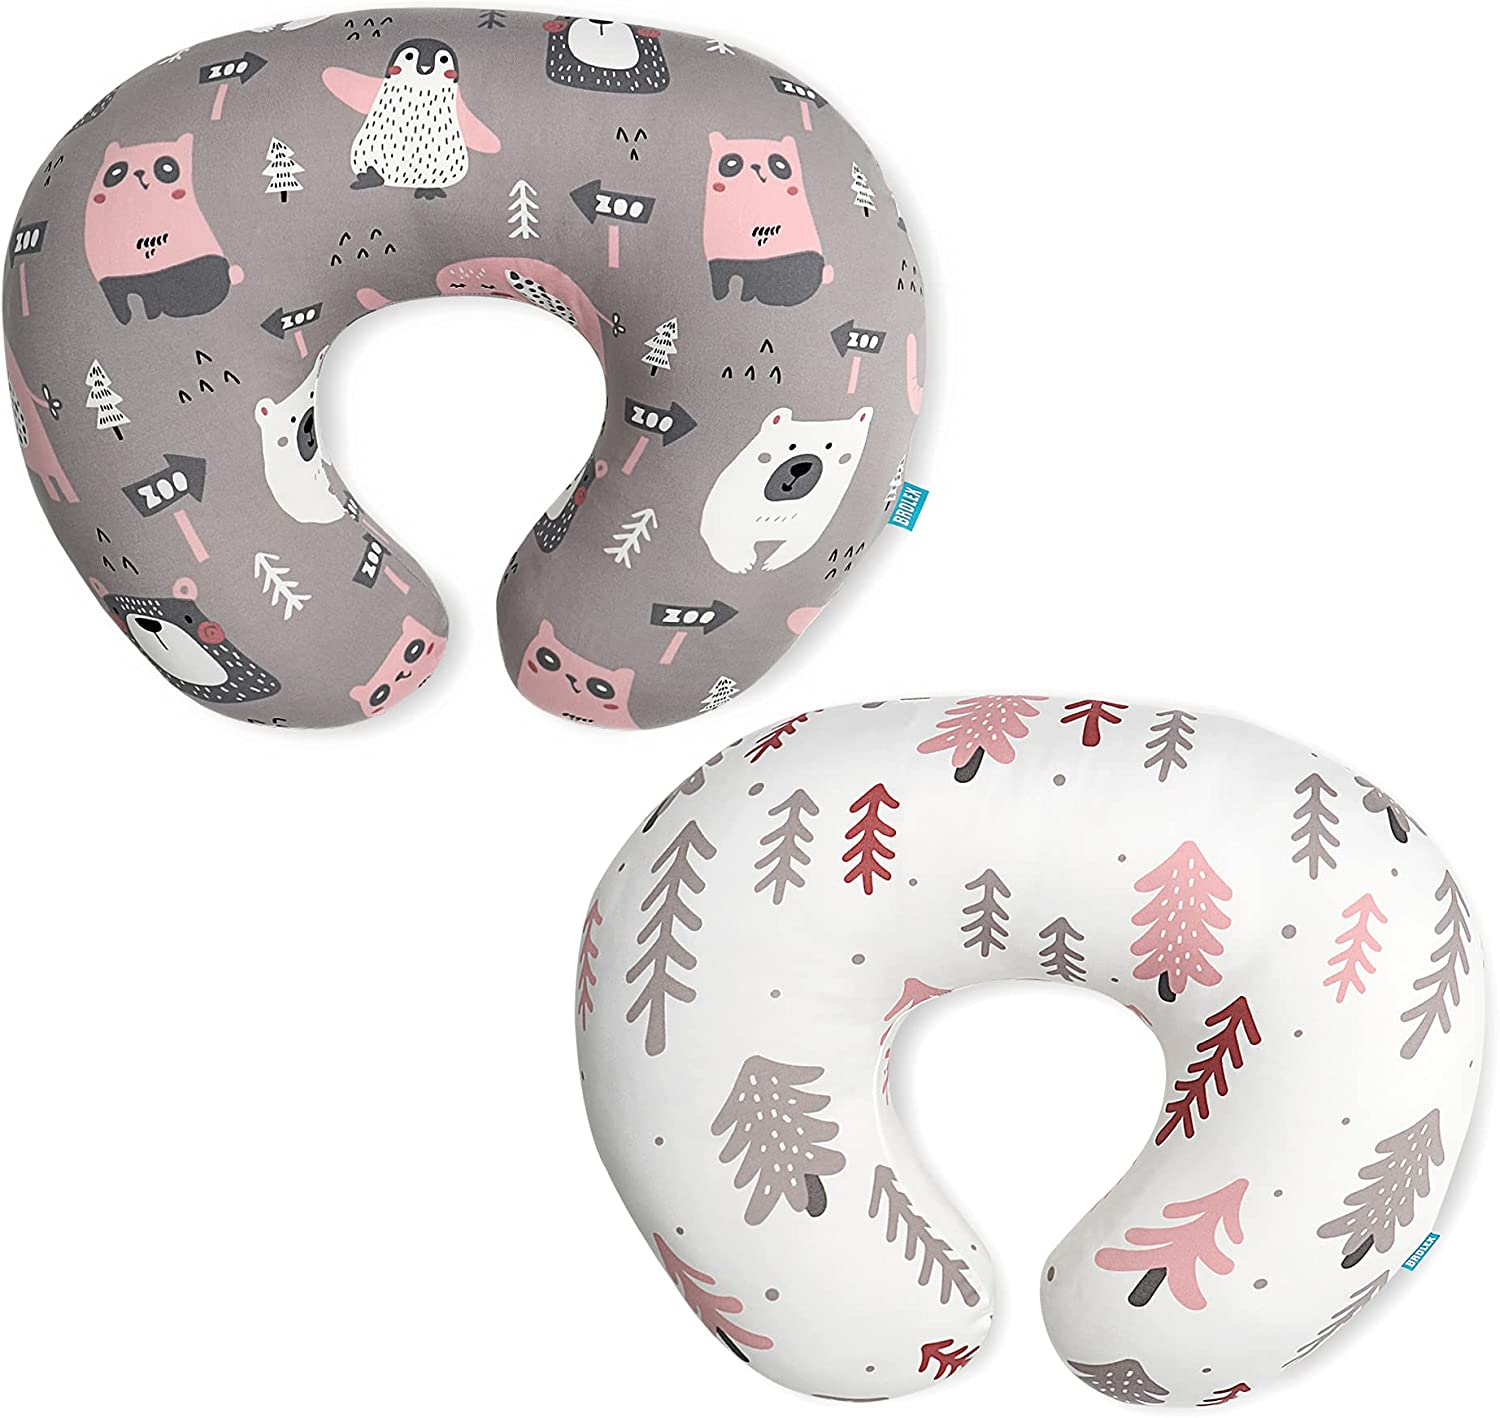 Stretchy Nursing Pillow Slipcovers 4 years warranty Covers-2 Ultra-Cheap Deals Pack